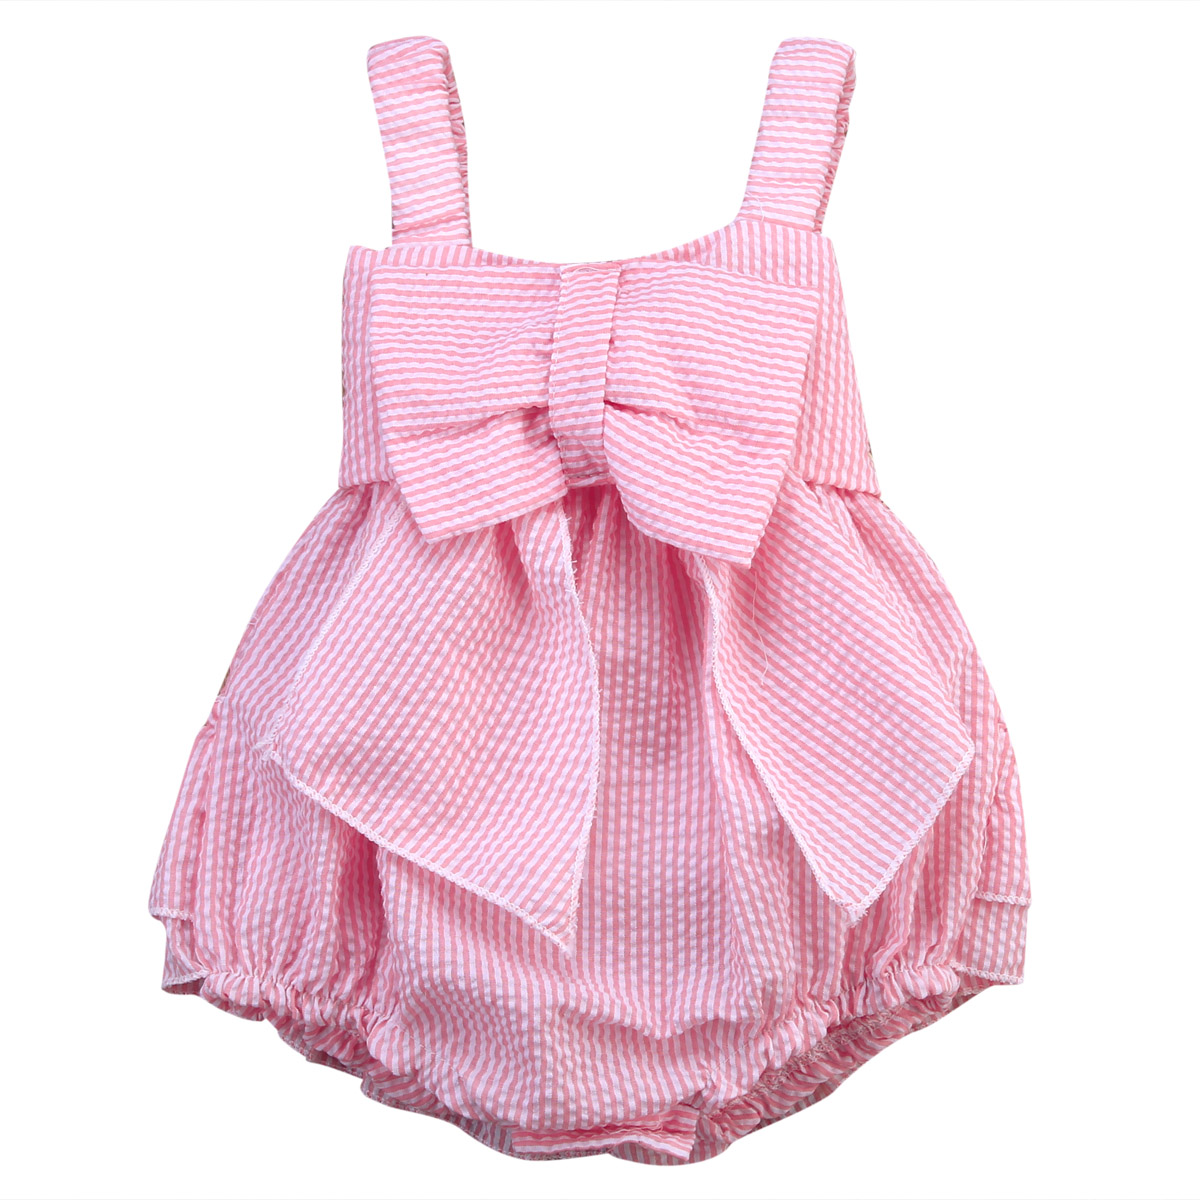 100% True Baby Girl Romper 6-12 Months One-pieces